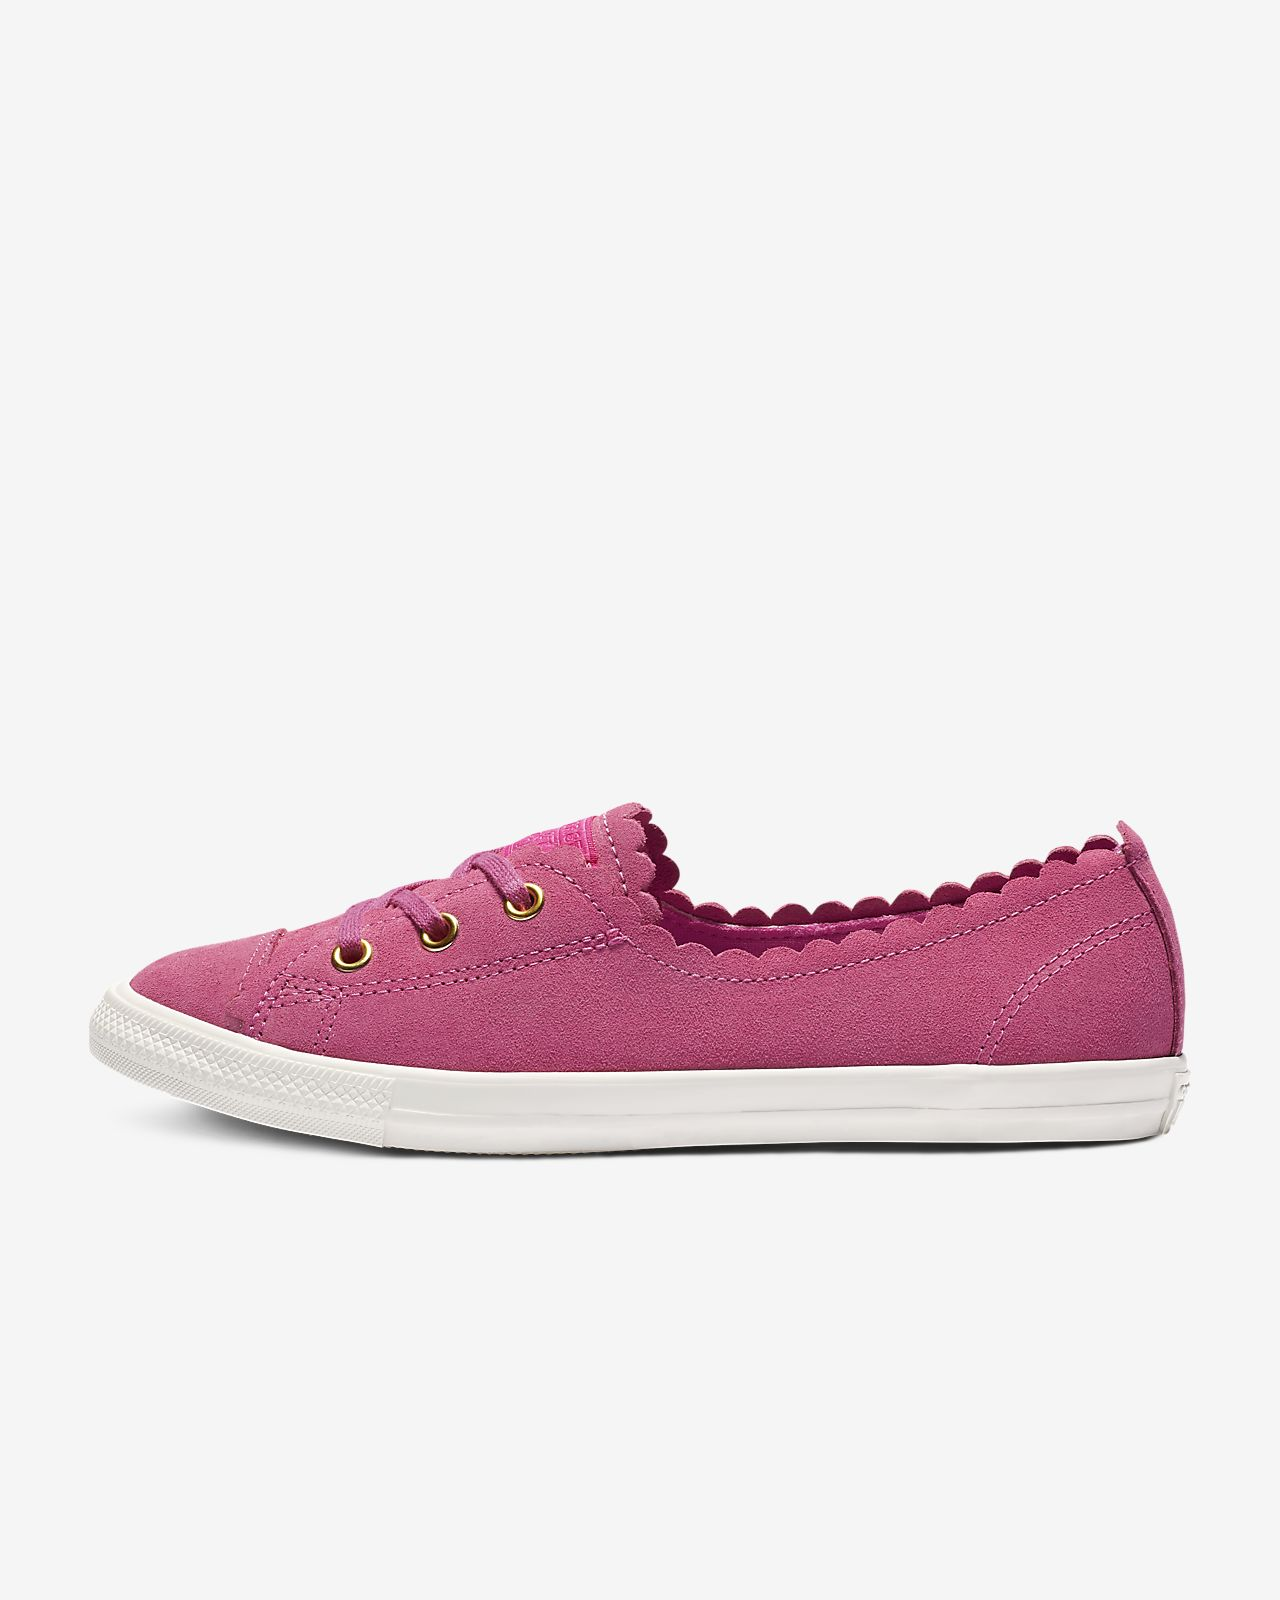 Chuck Taylor All Star Ballet Lace Low Top Womens Shoe